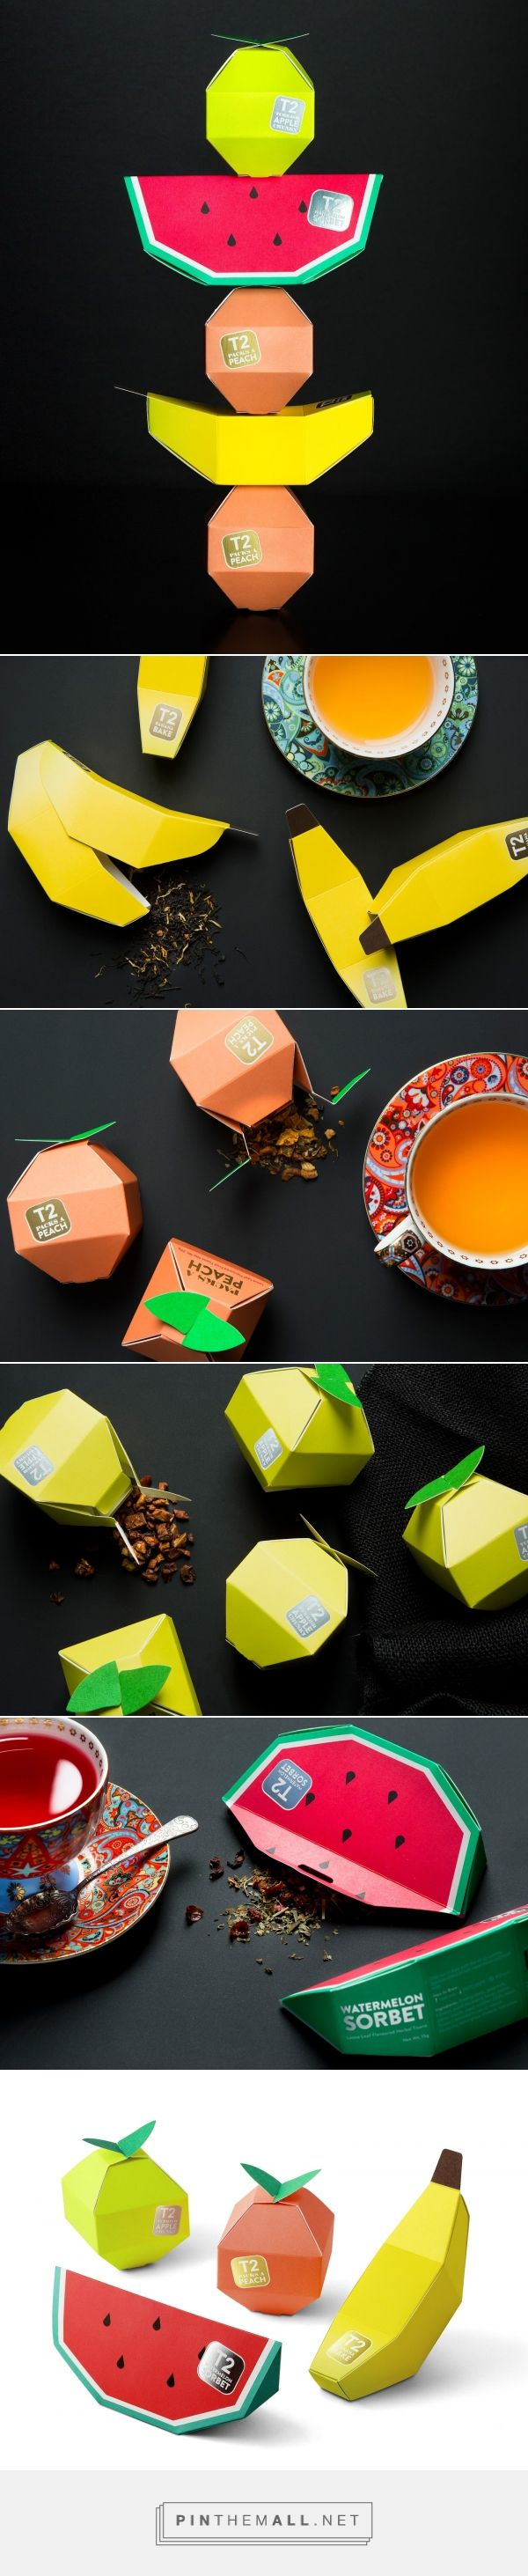 T2 Tea Mini Fruits packaging design - http://www.packagingoftheworld.com/2016/11/t2-tea-mini-fruits.html